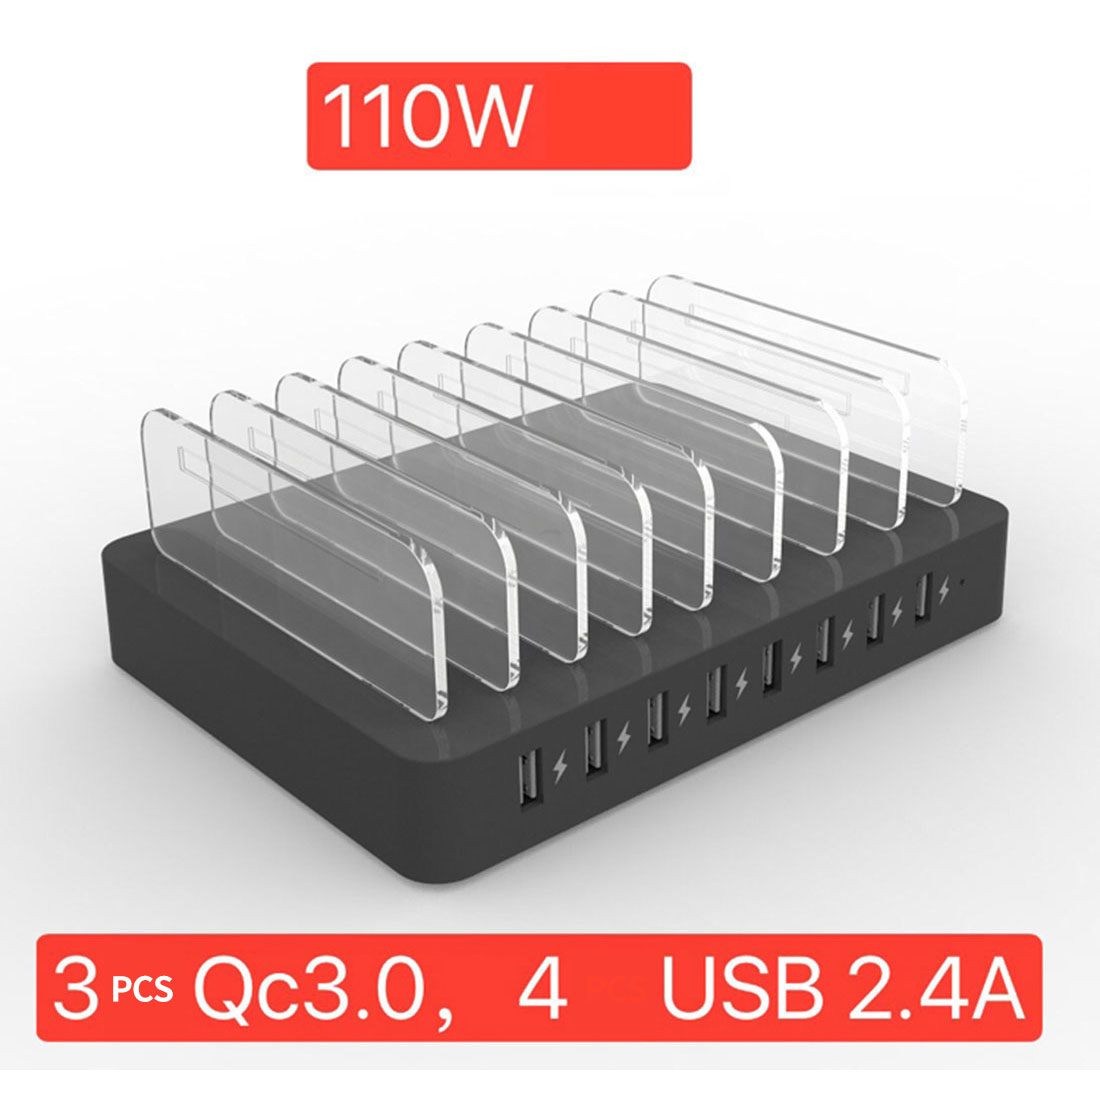 110W 8 Ports Multi USB Charger QC 3.0 2.4A for IPhone X 11 Ipad Fast Charging USB Desktop Station Dock Bracket for Samsung S10|Mobile Phone Chargers| |  - title=